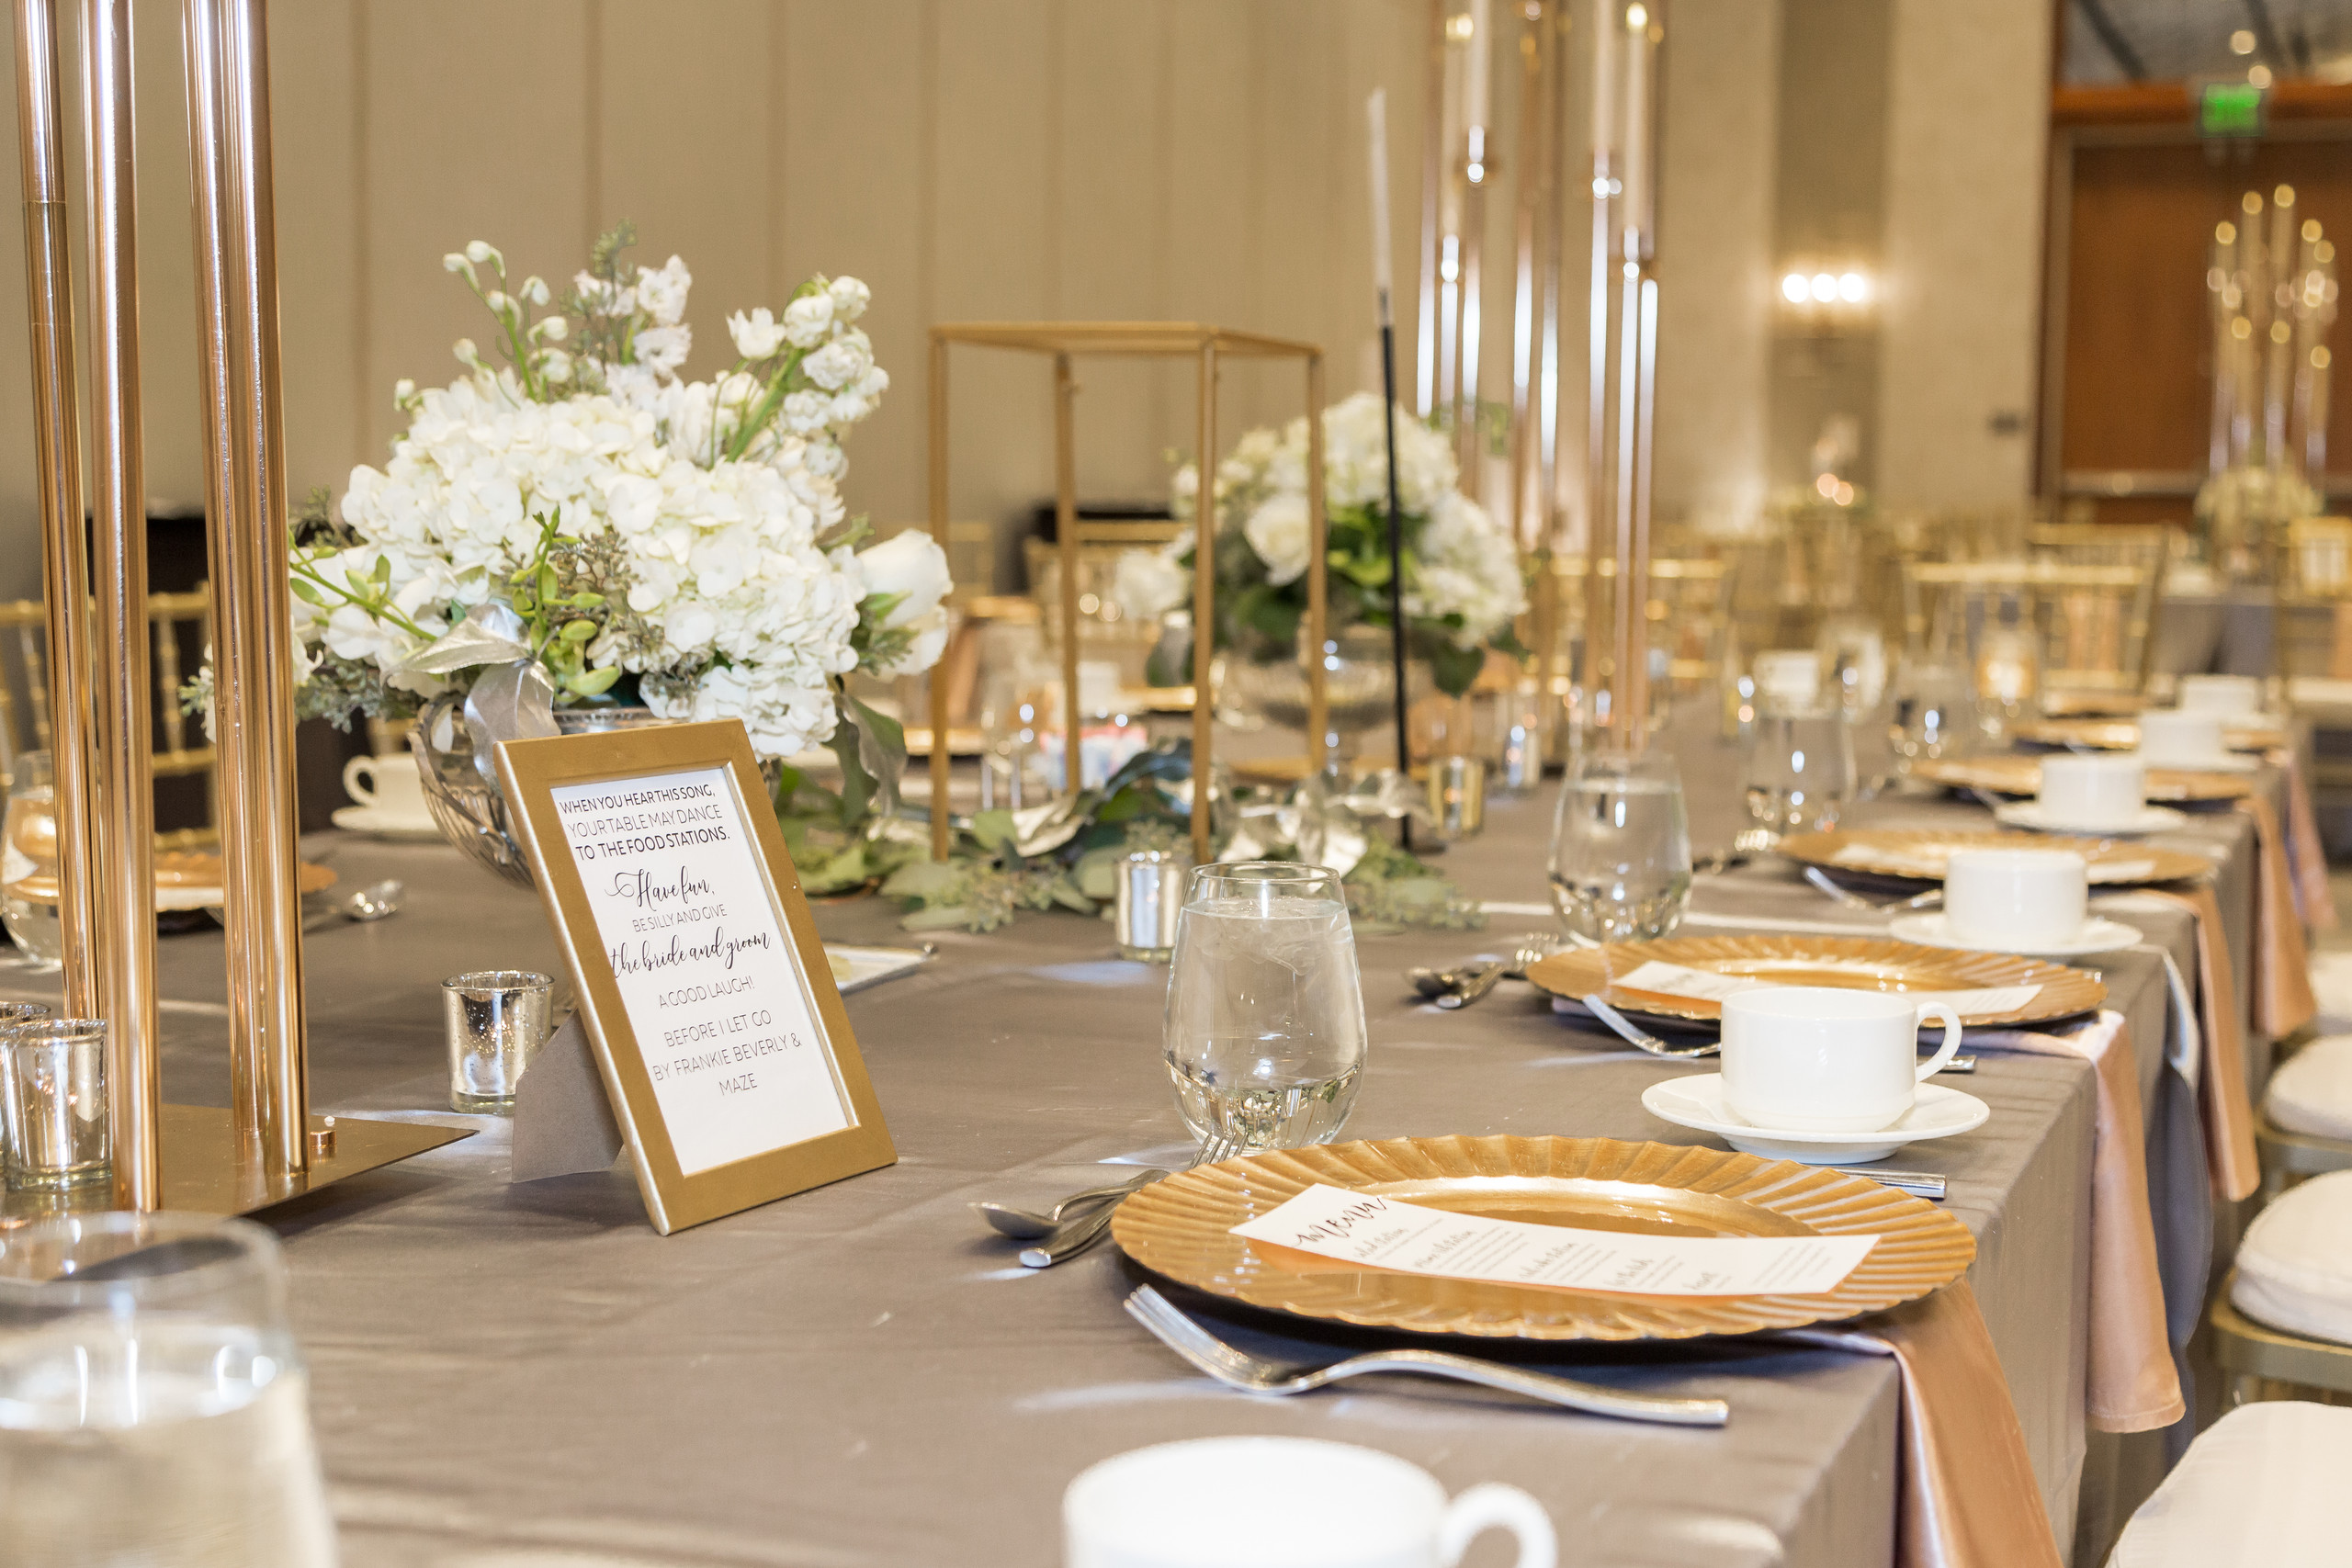 The glamourous wedding reception decor after the wedding ceremony at the Hilton Main in Norfolk, Virginia.